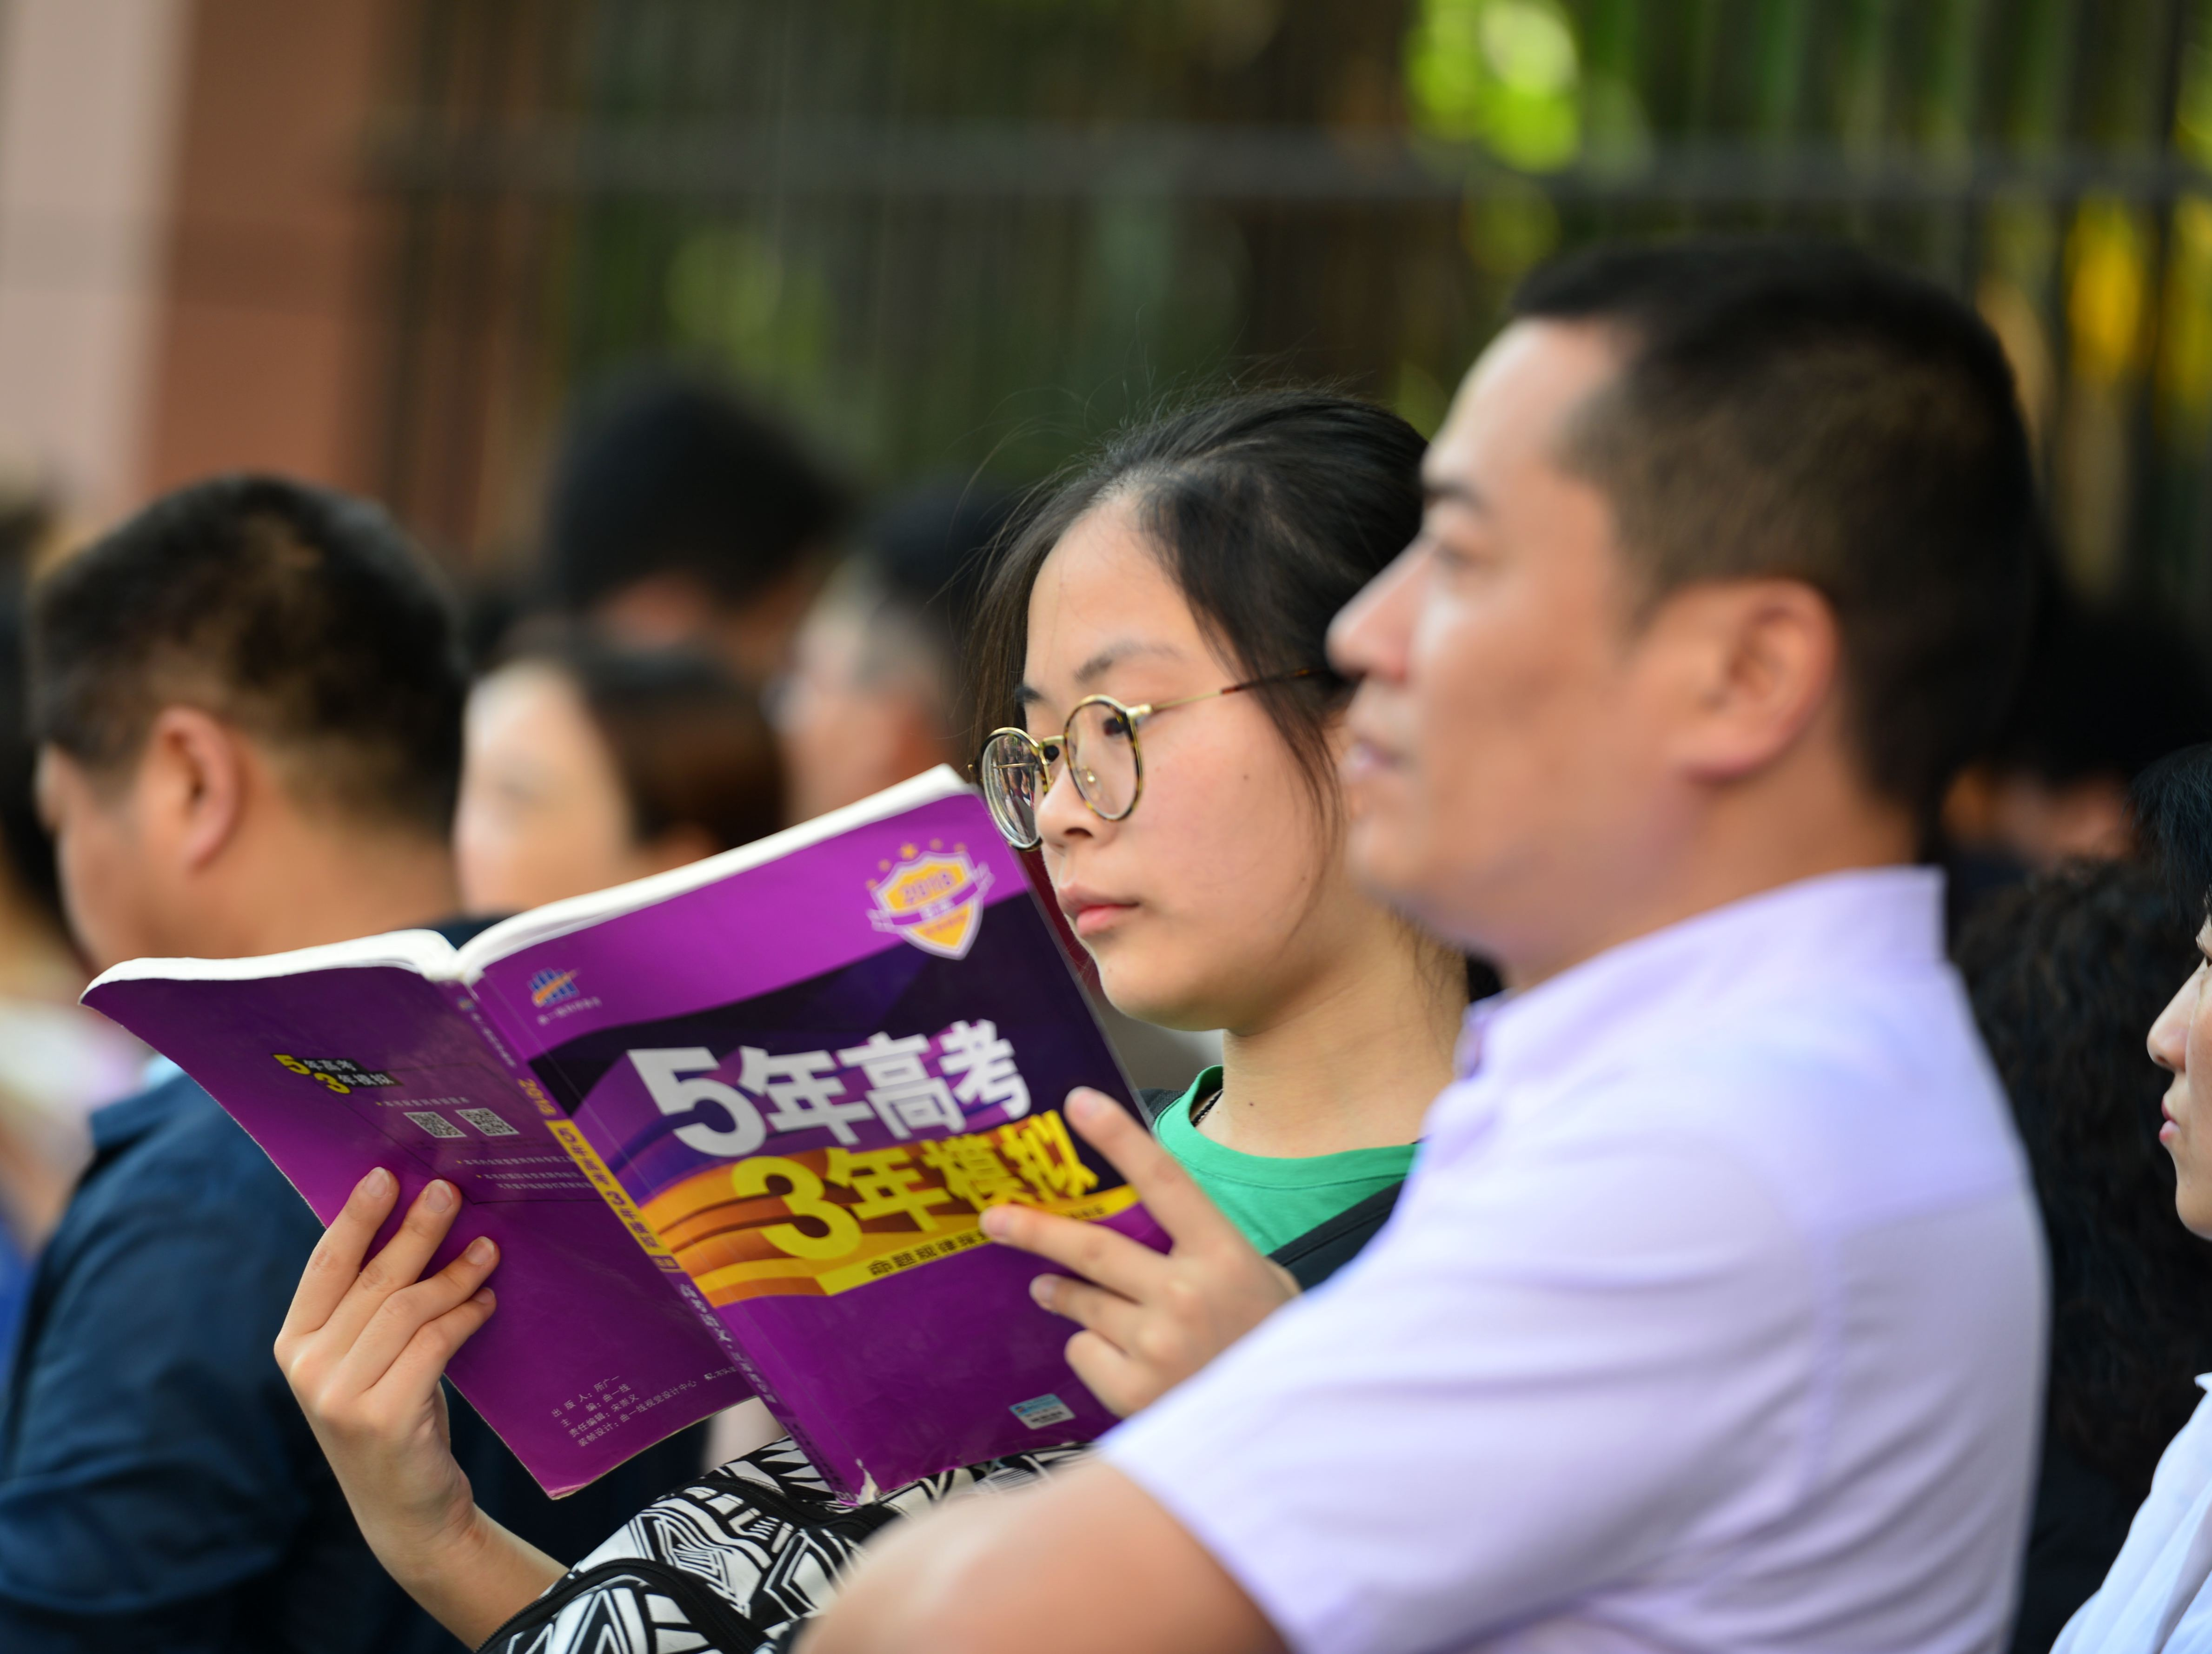 A candidate reviews before entering an exam site for the National College Entrance Examination (aka Gaokao) at Nanjing No.29 High School on June 7, 2018 in Nanjing, Jiangsu Province of China. (Photo by VCG/VCG via Getty Images)